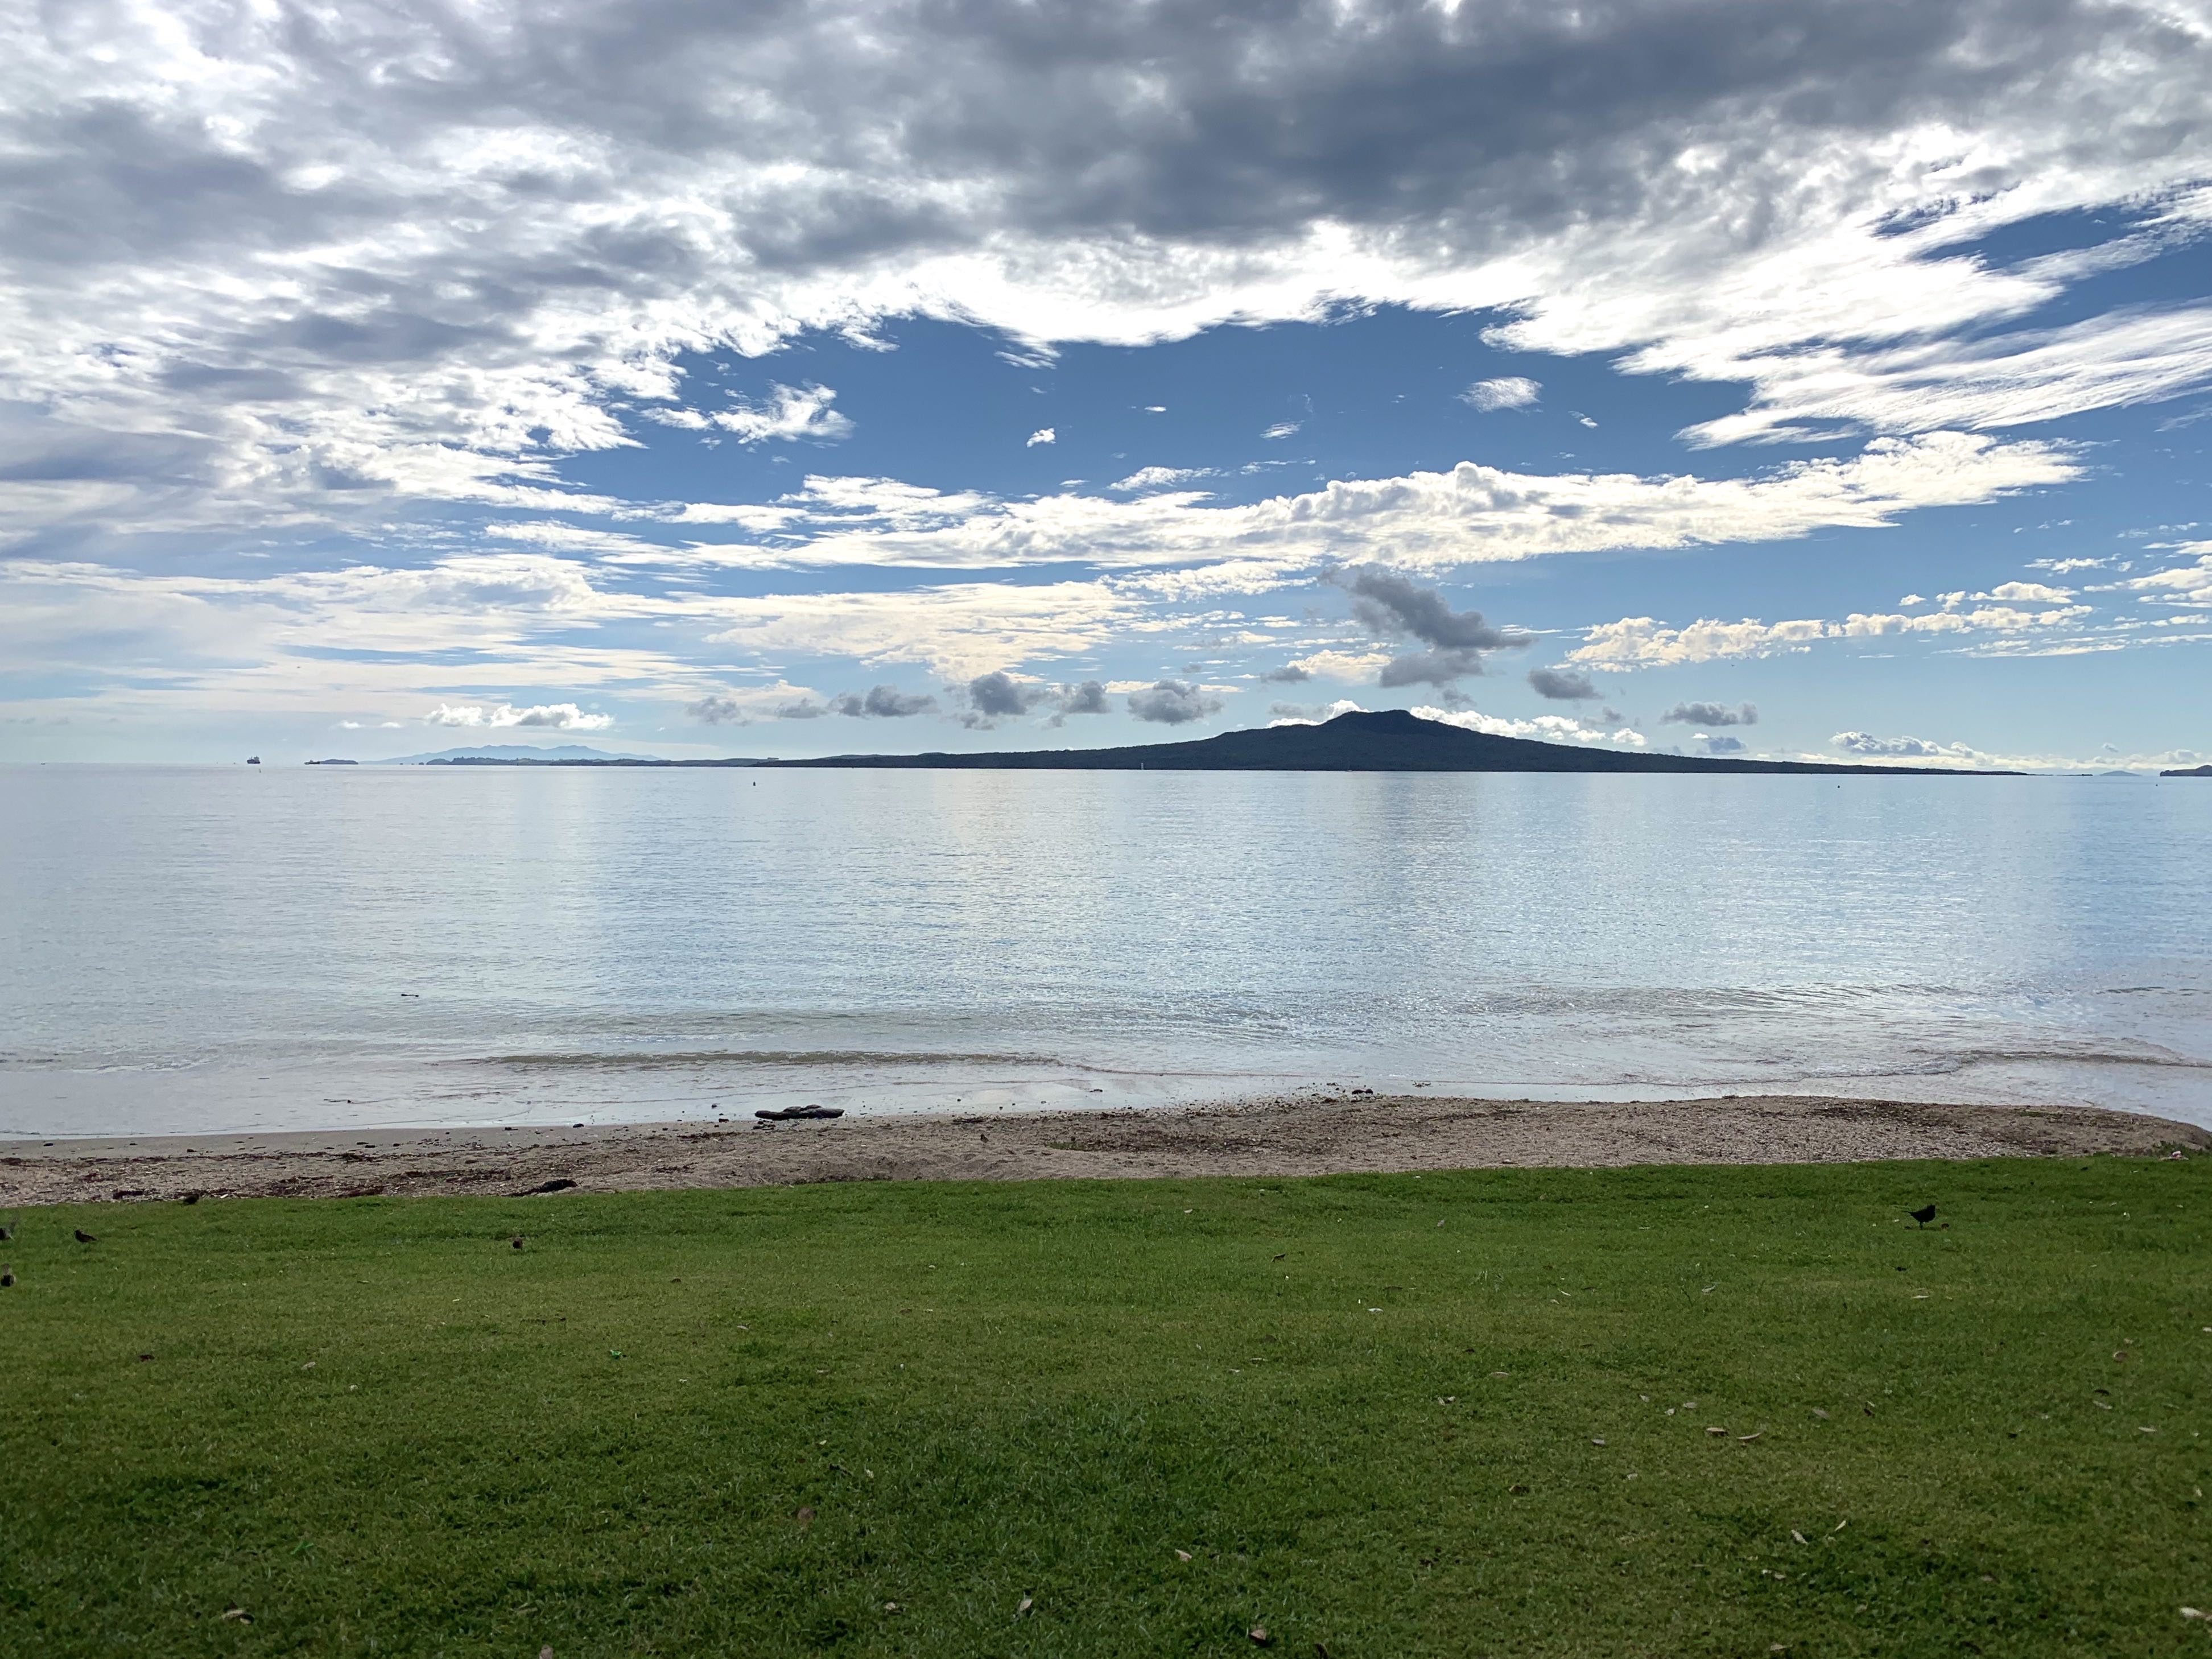 A beach with the tide in. Grass in the foreground and a volcano in the background.